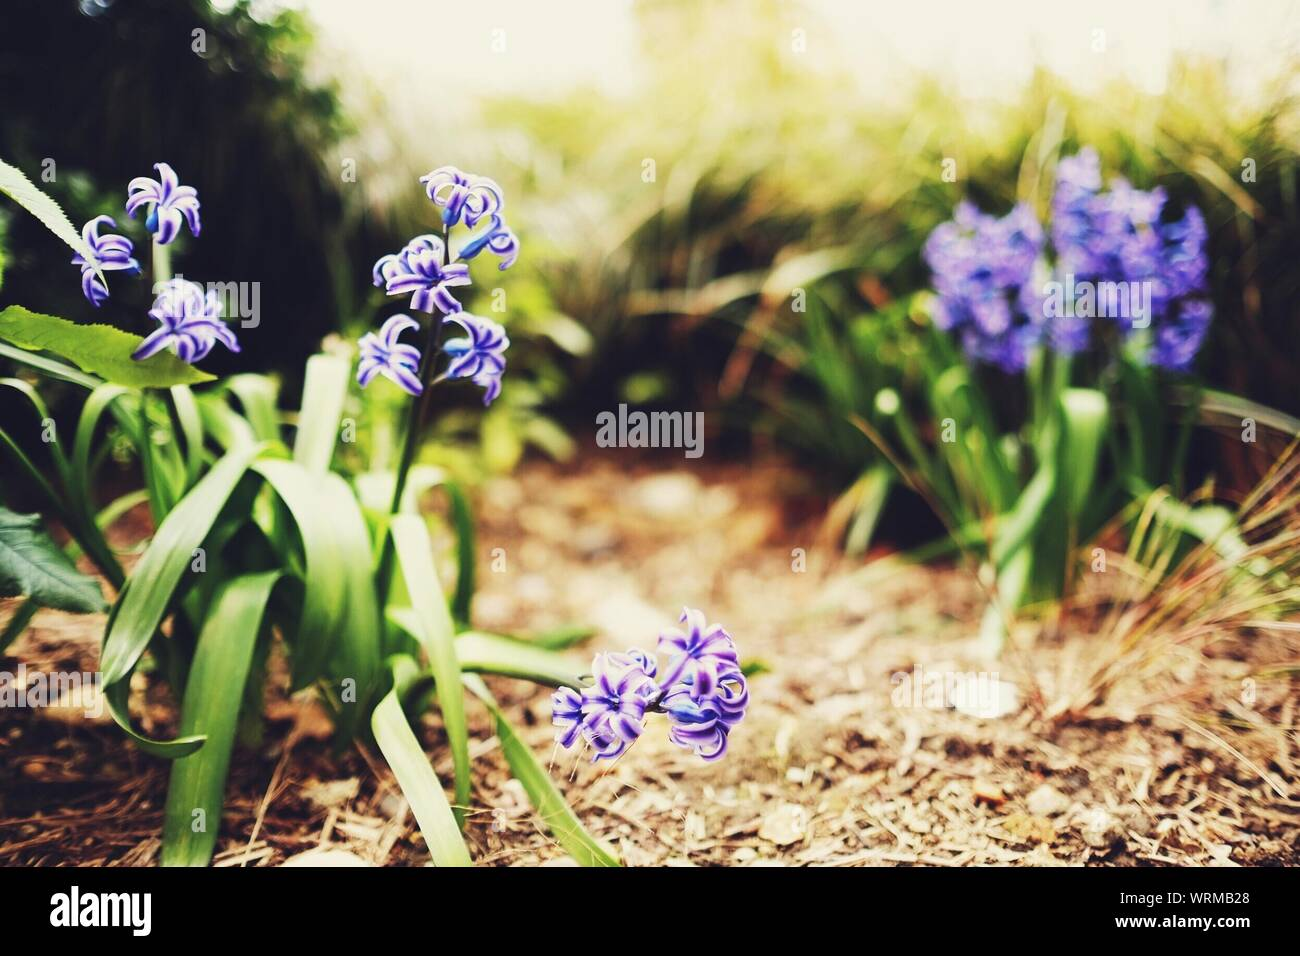 Flowers With Blue Inflorescences Stock Photo